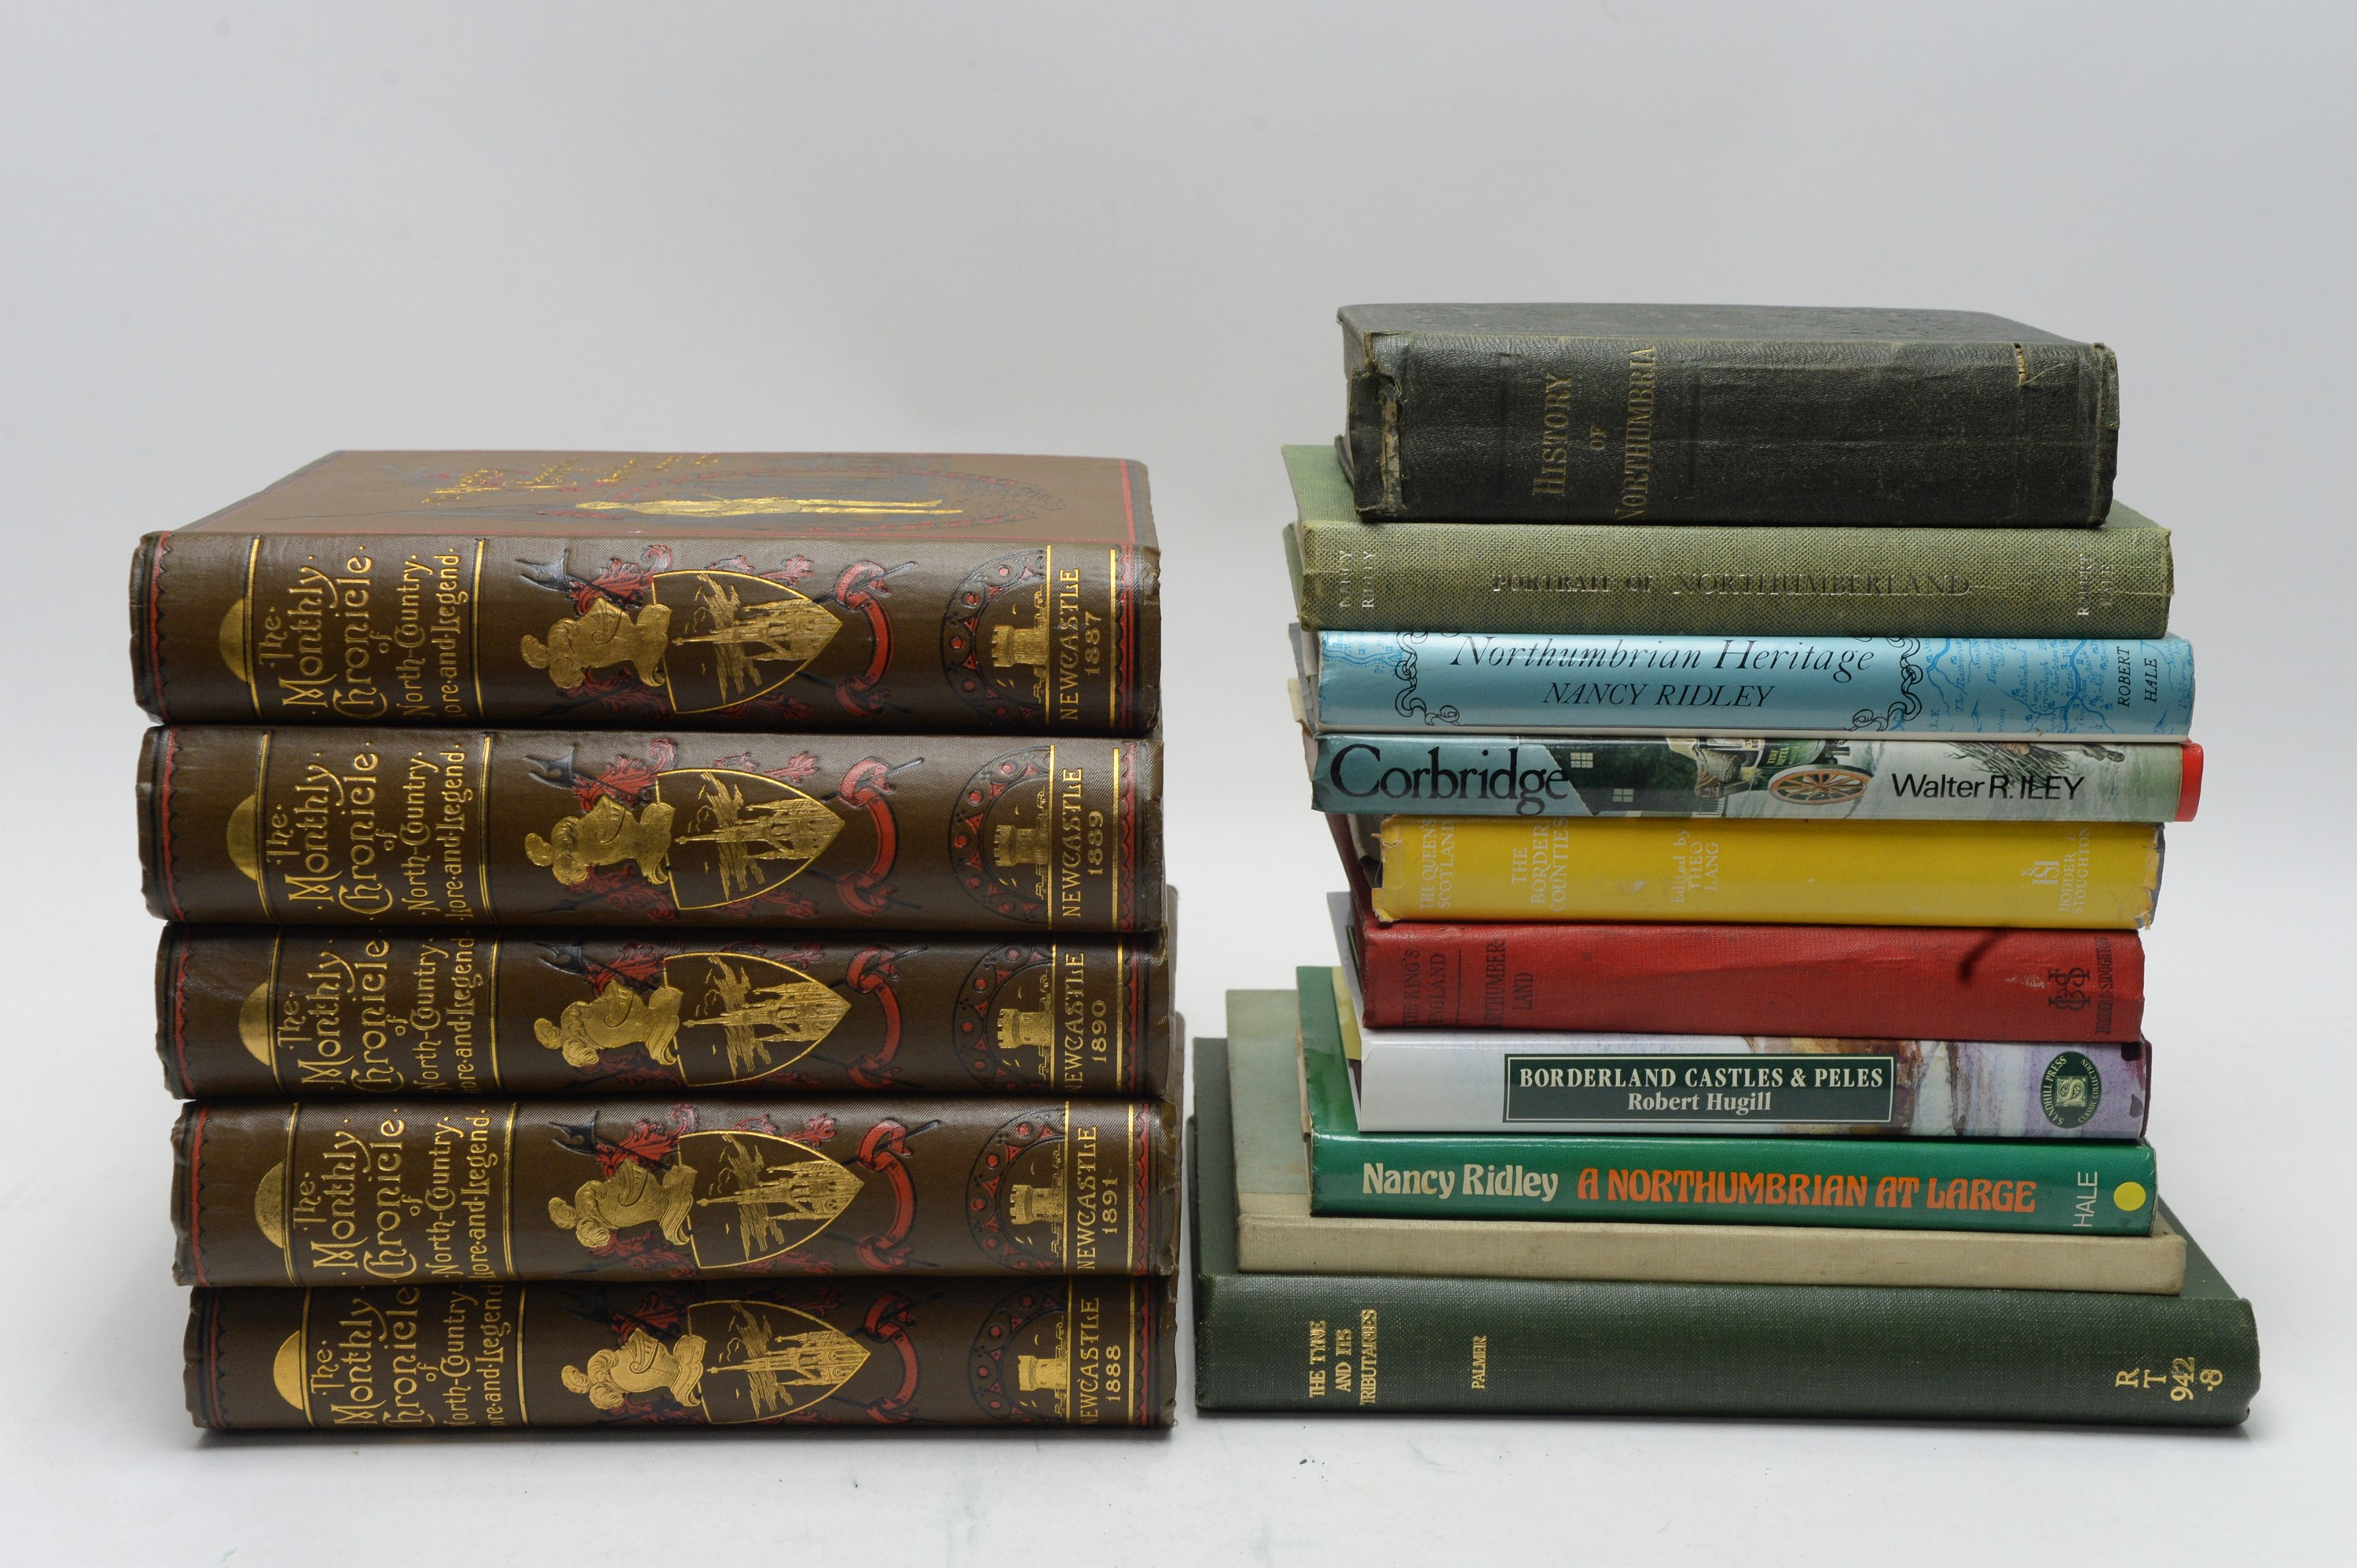 The Monthly Chronicle of North-Country Lore and Legend; and other books. - Image 2 of 3